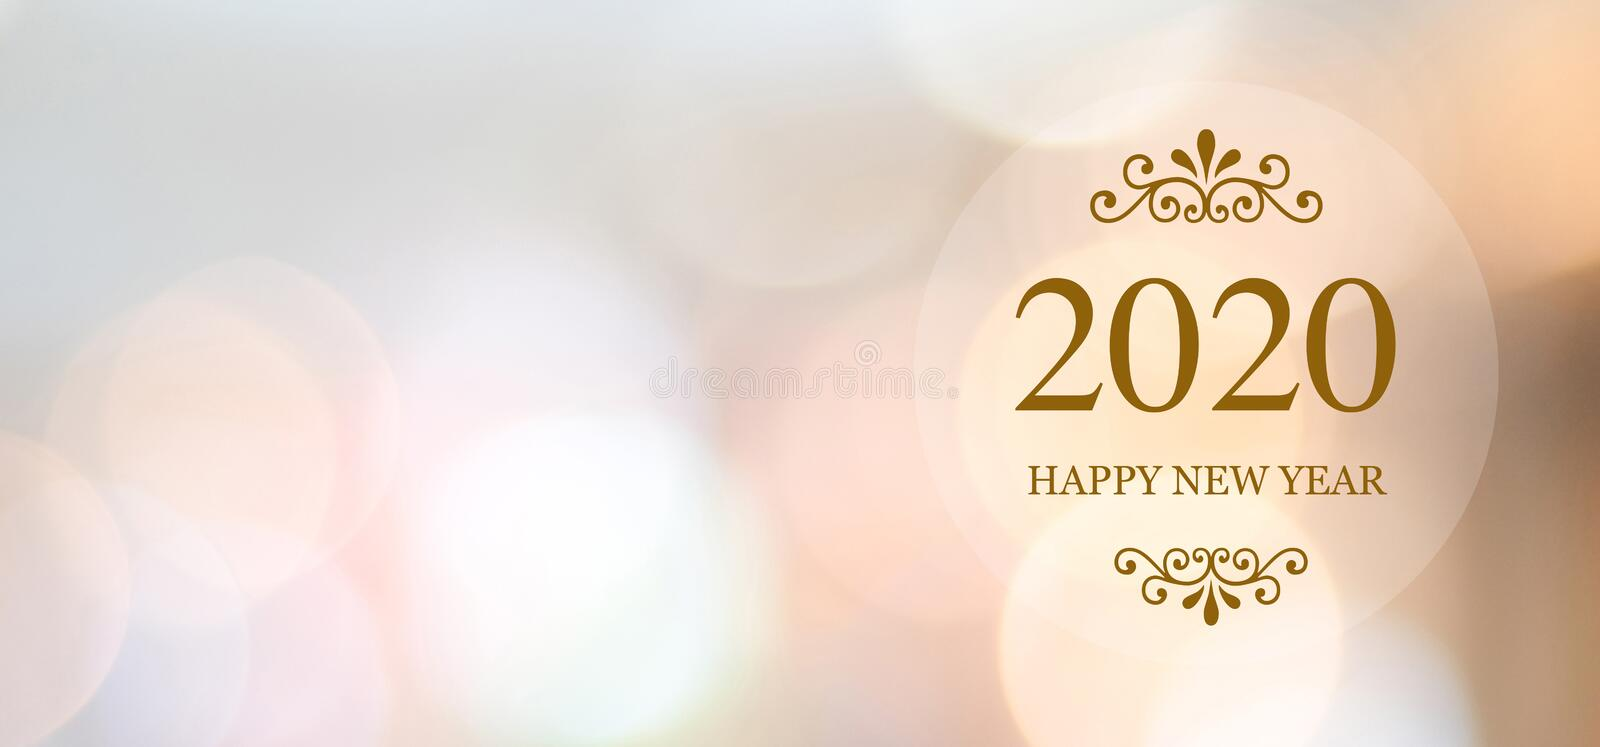 Happy New Year 2020 on blur abstract bokeh background with copy space for text, new year greeting card, banner vector illustration